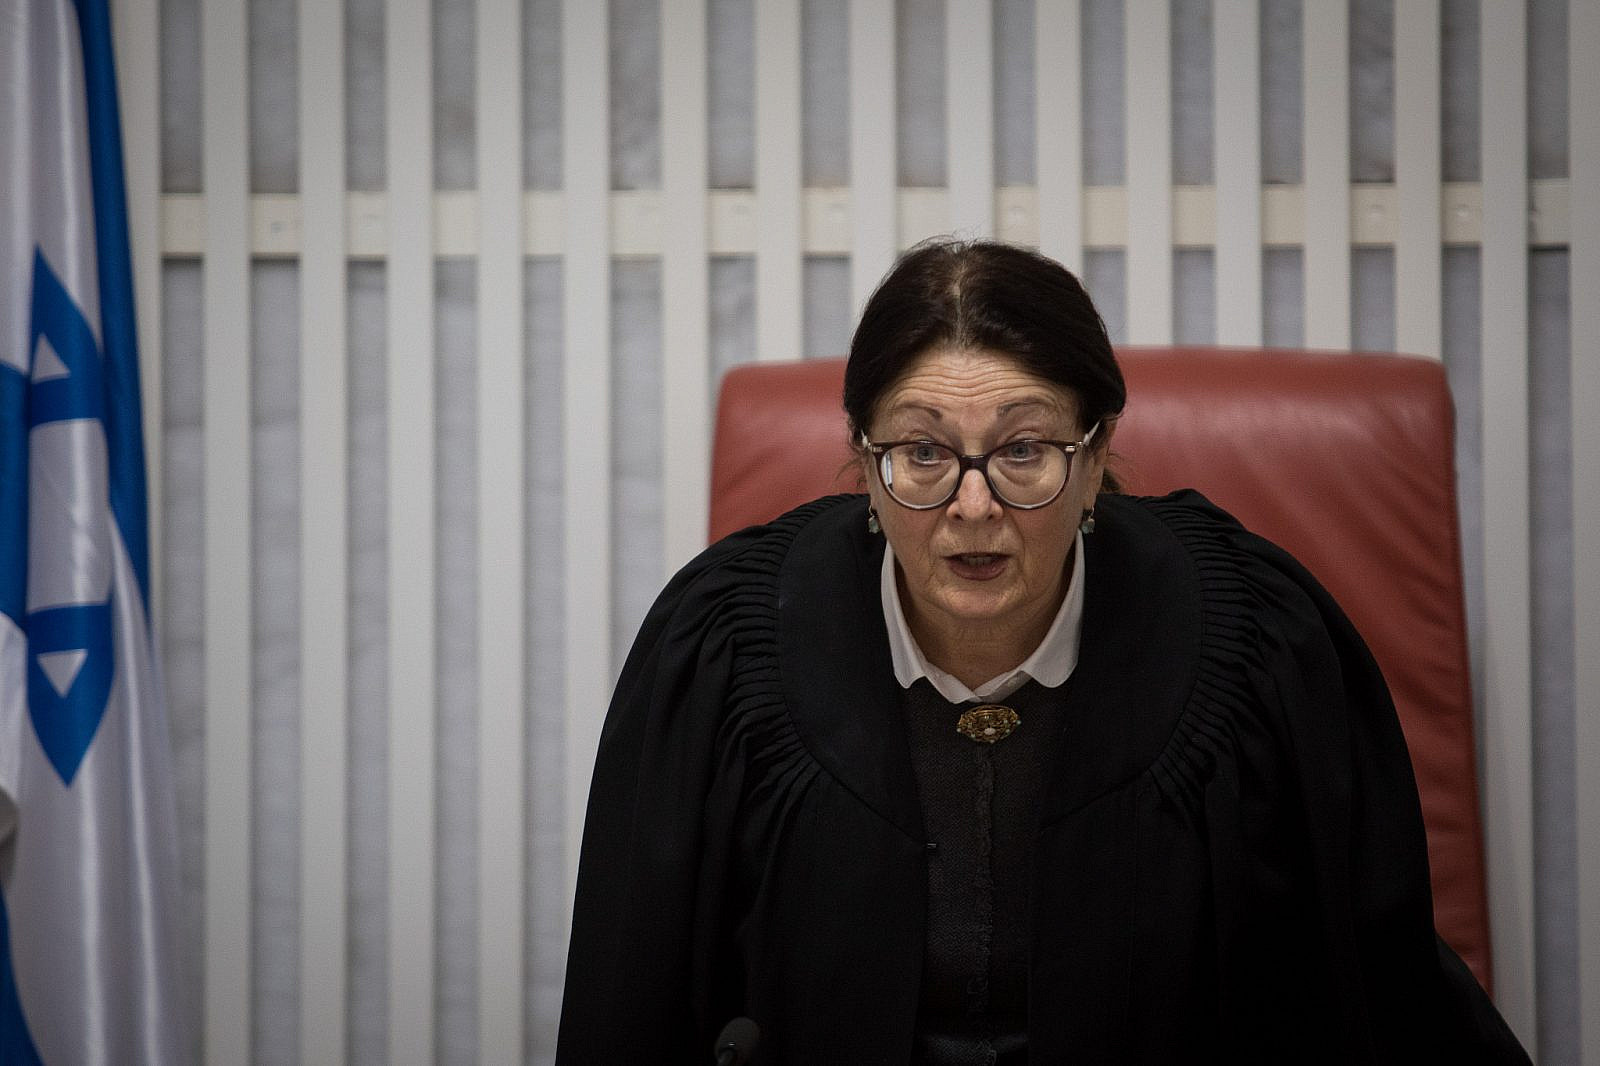 How Israel's top court outlawed moral opposition to the occupation